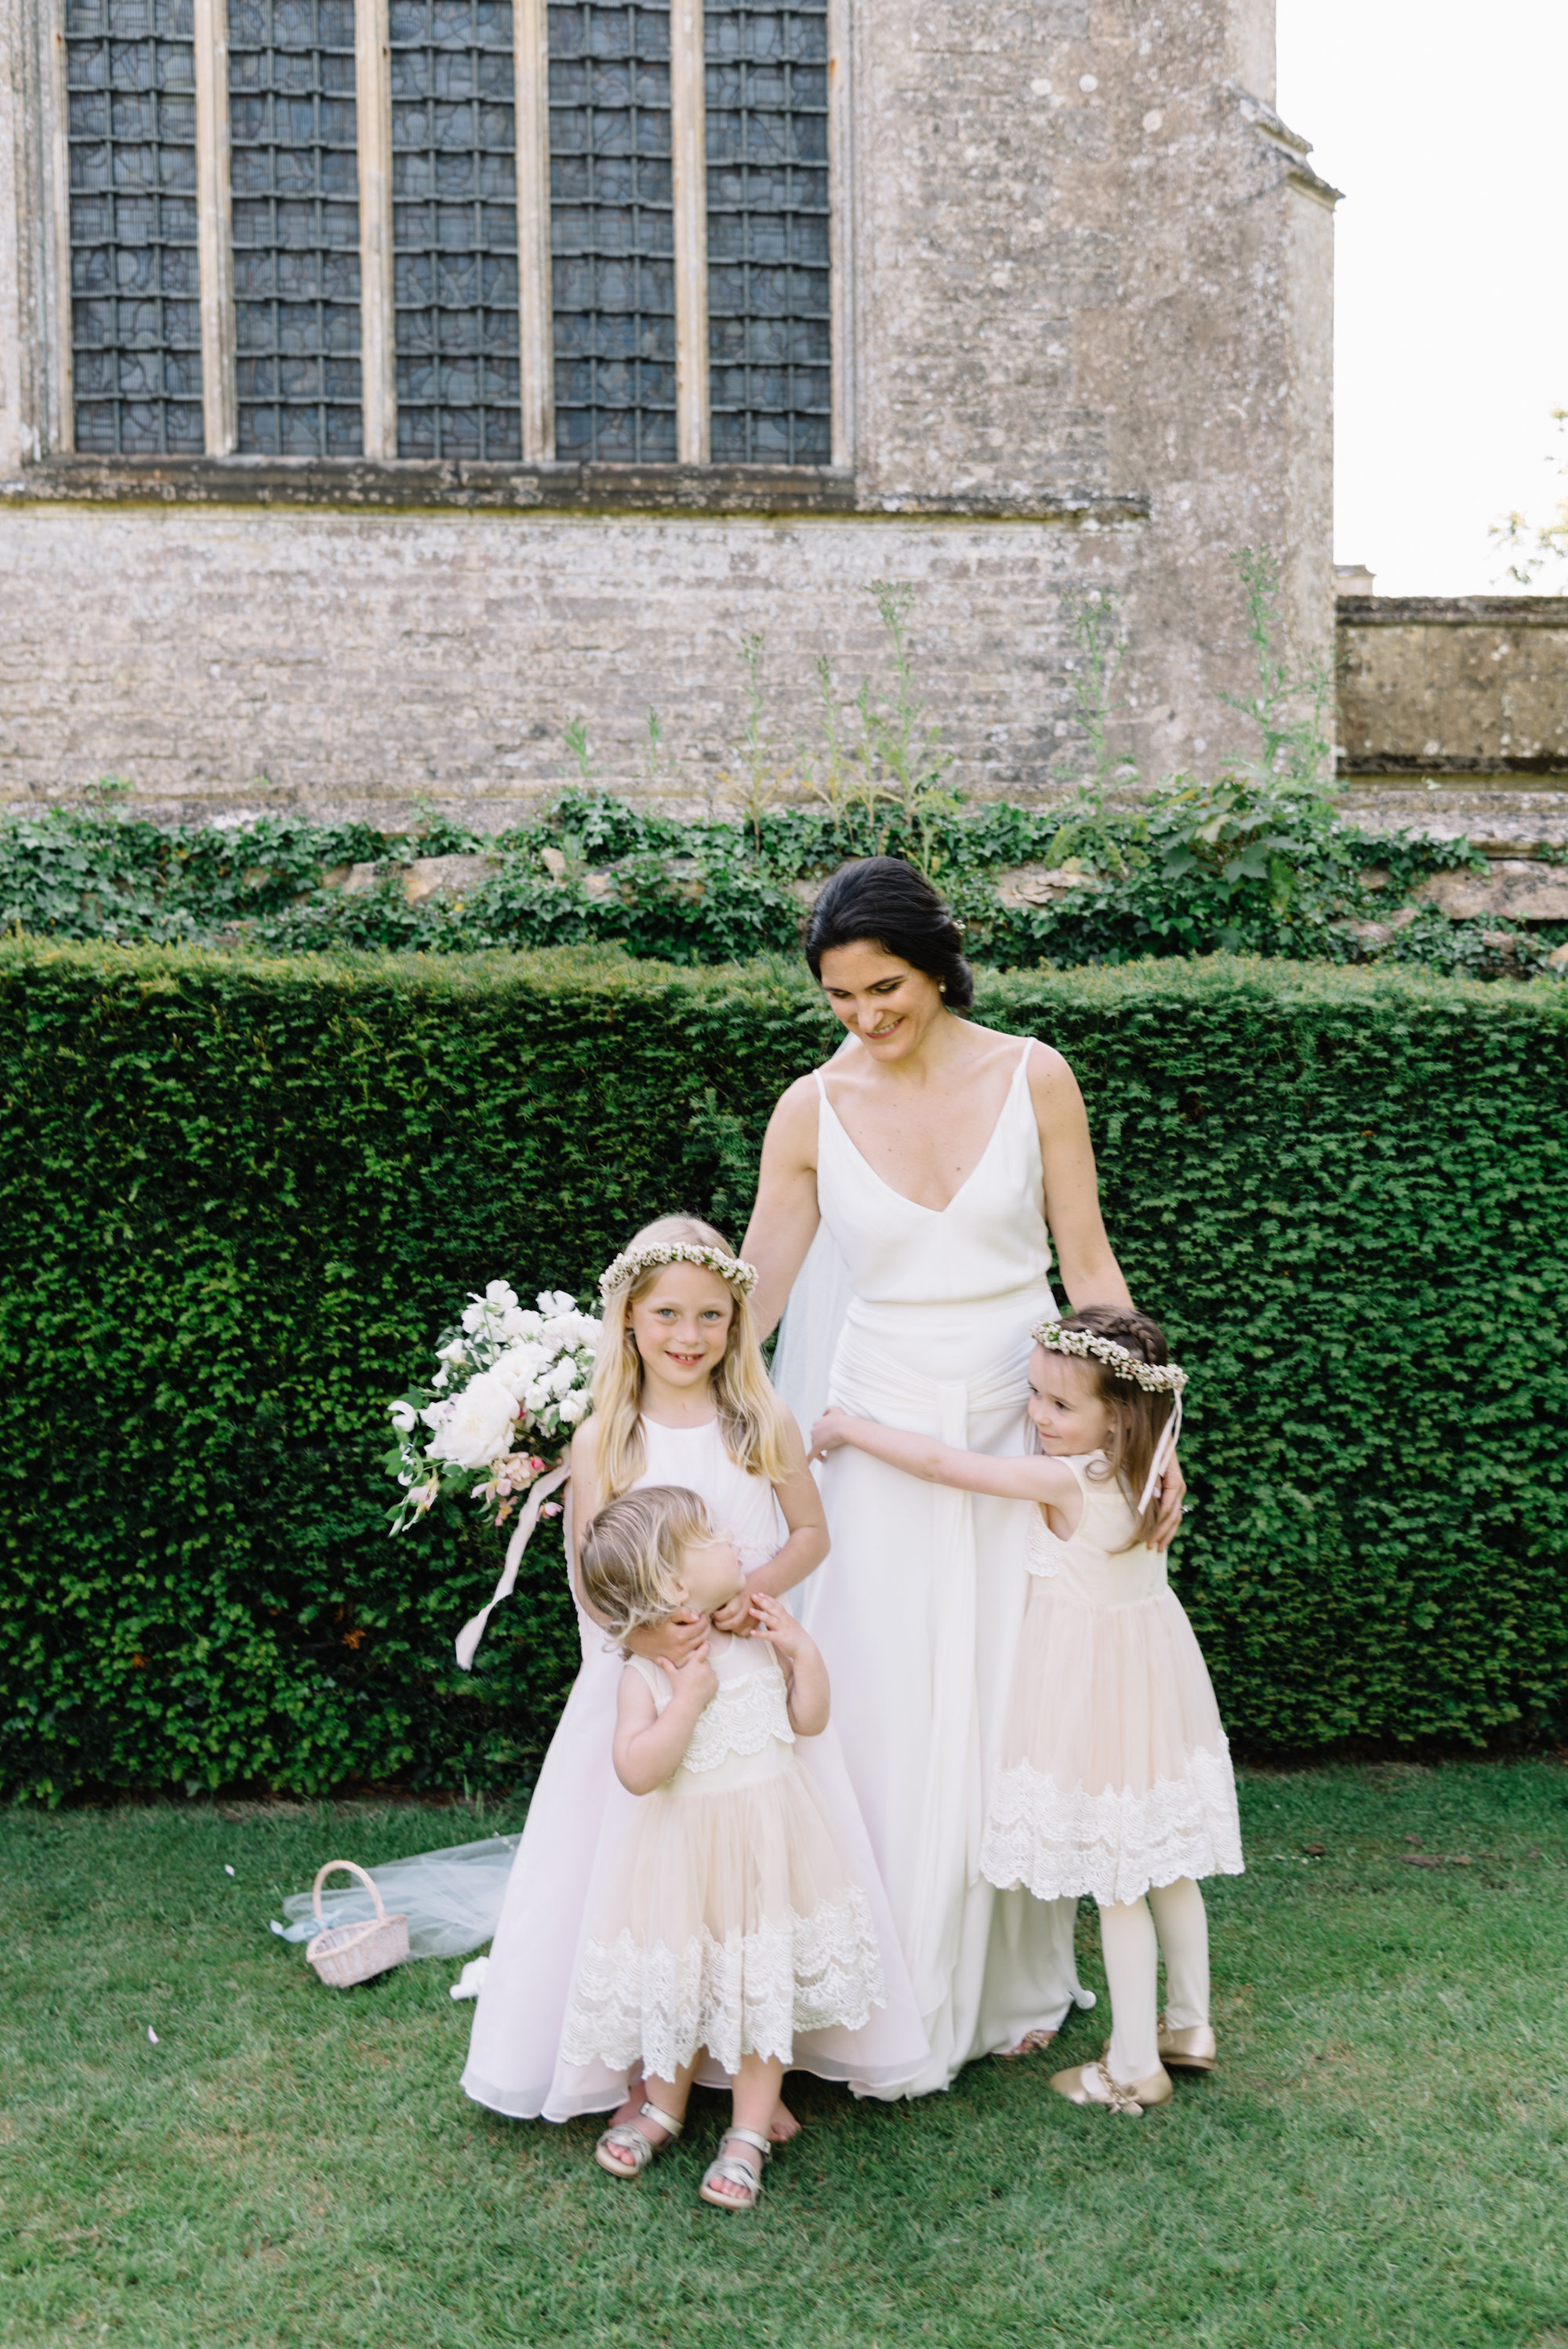 Luxury Wedding Planner UK | Jennifer & Timothy's English Country Manor Wedding | Soft Pink Pale Blue White and Silver Toned Green Neutral Tones American Bride North Cadbury Court | Nicole Colwell Photography 0666.jpg